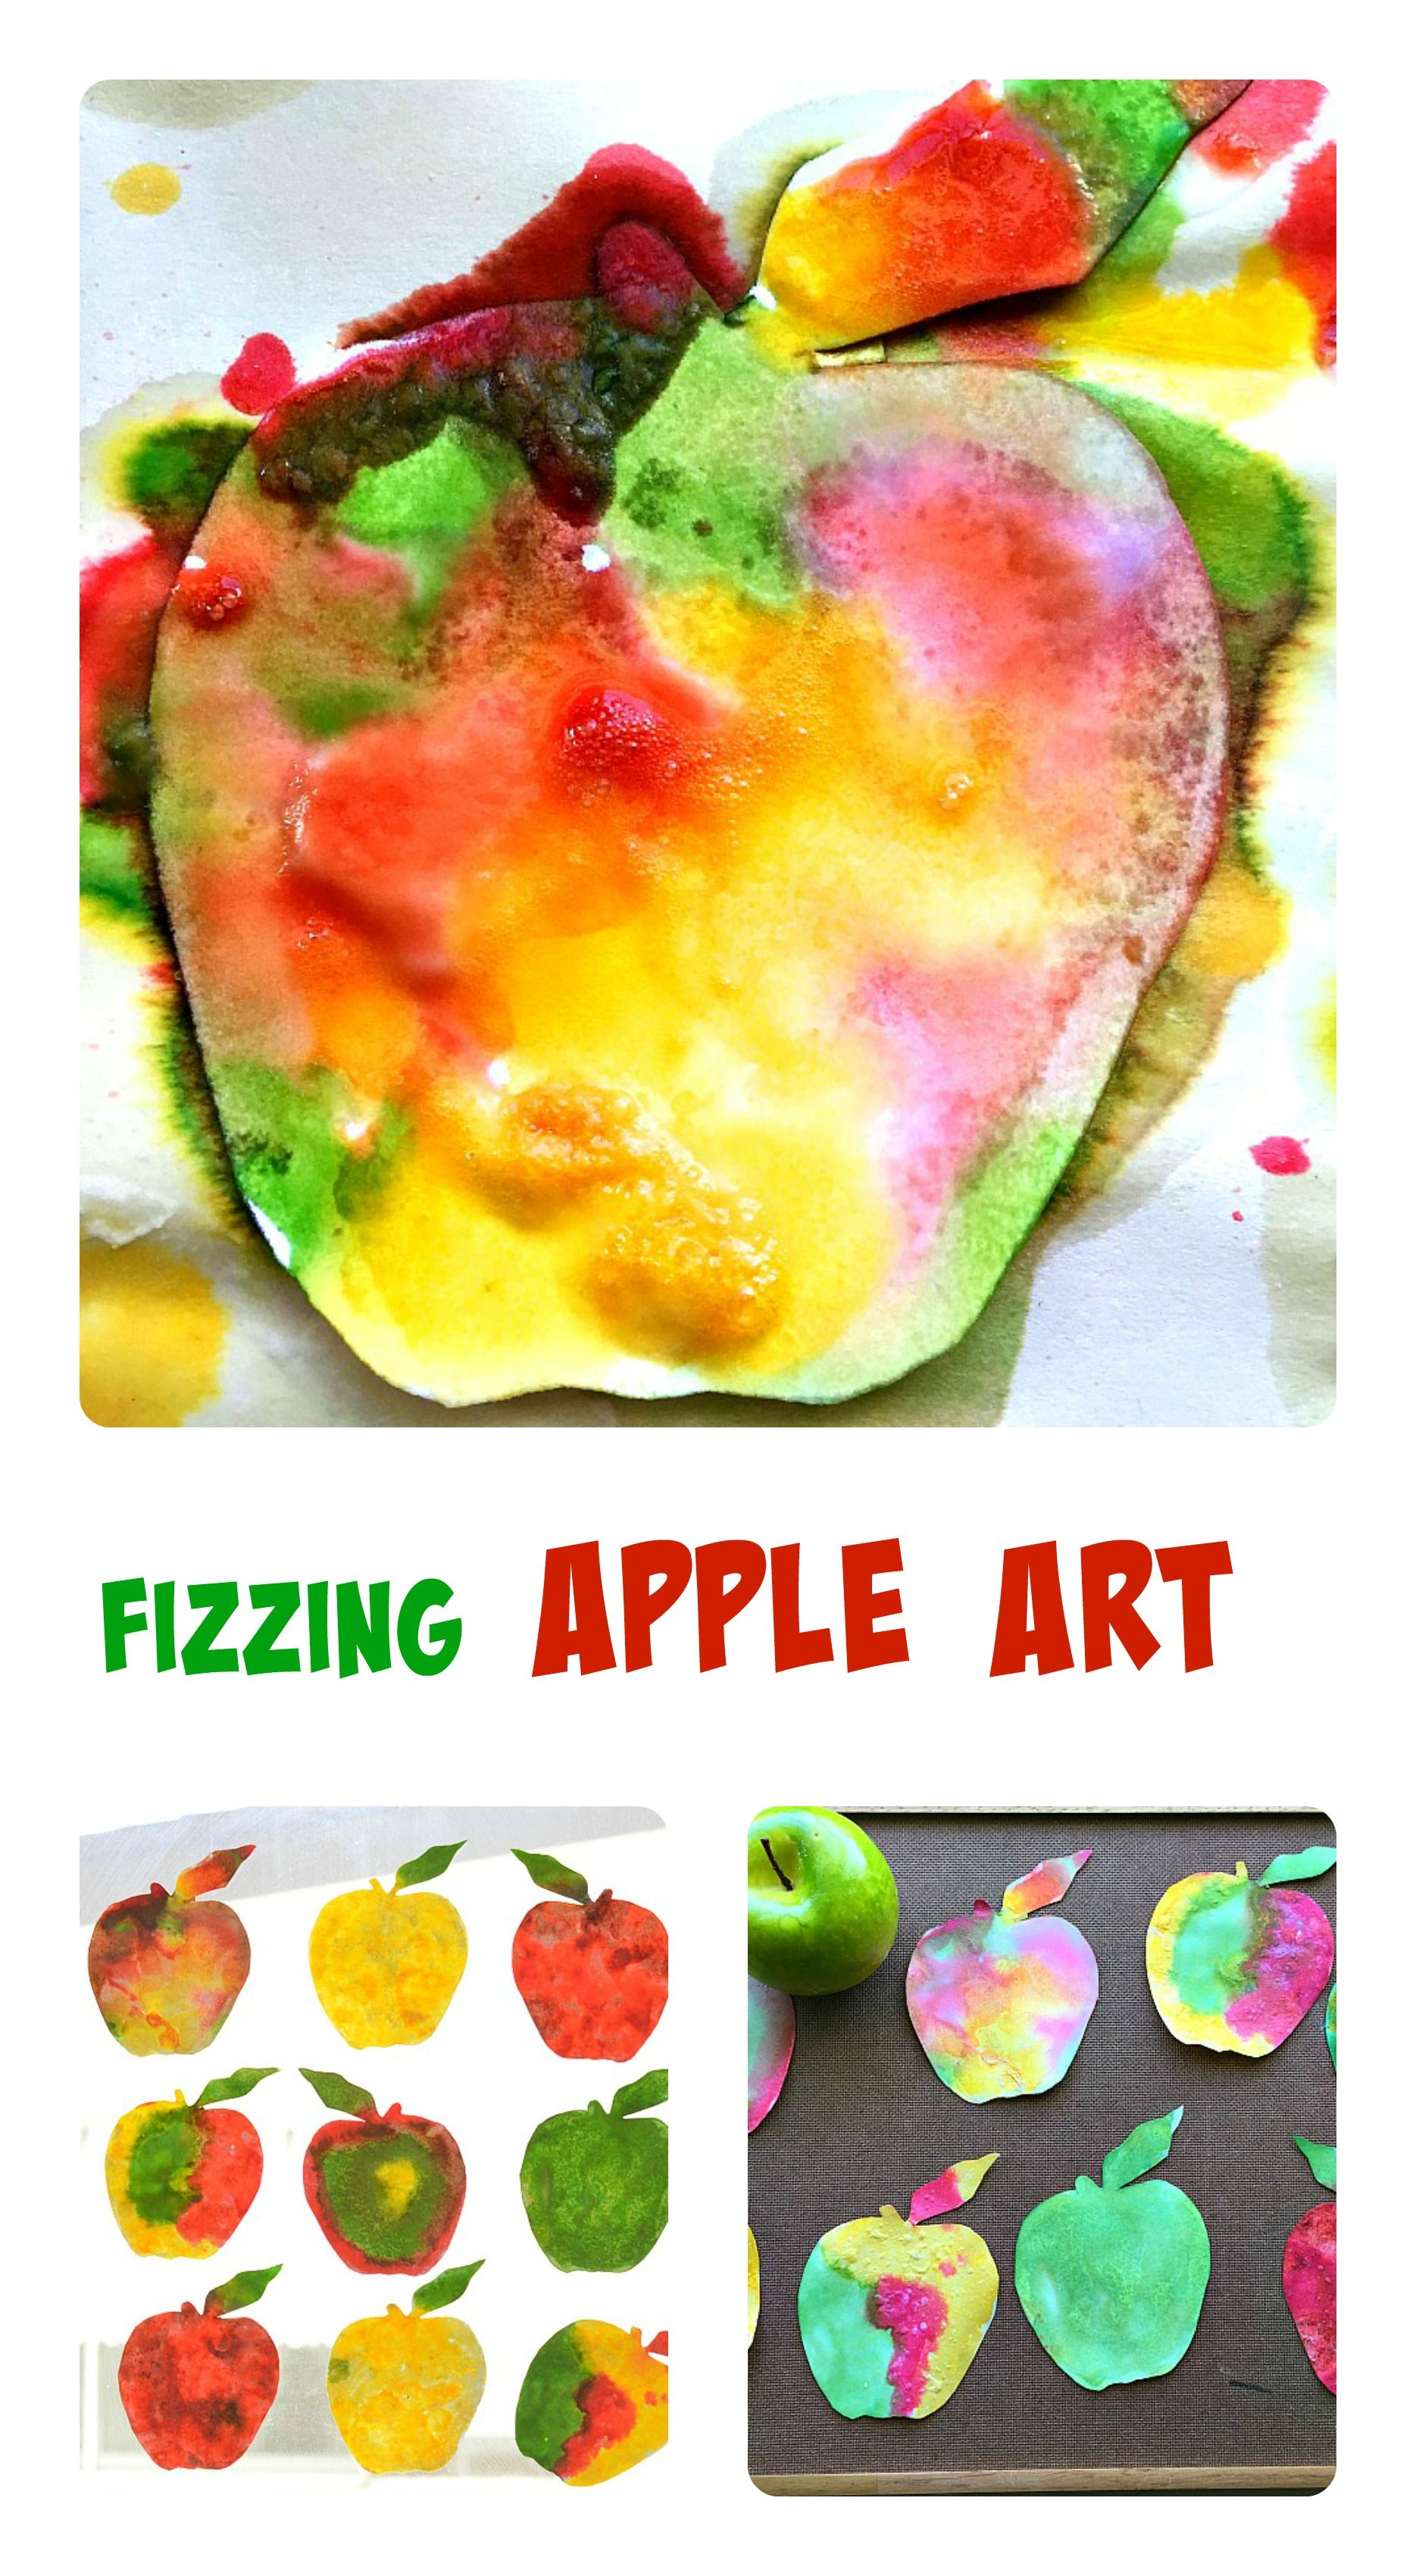 Science And Art Go Together In This Fun And Engaging Apple